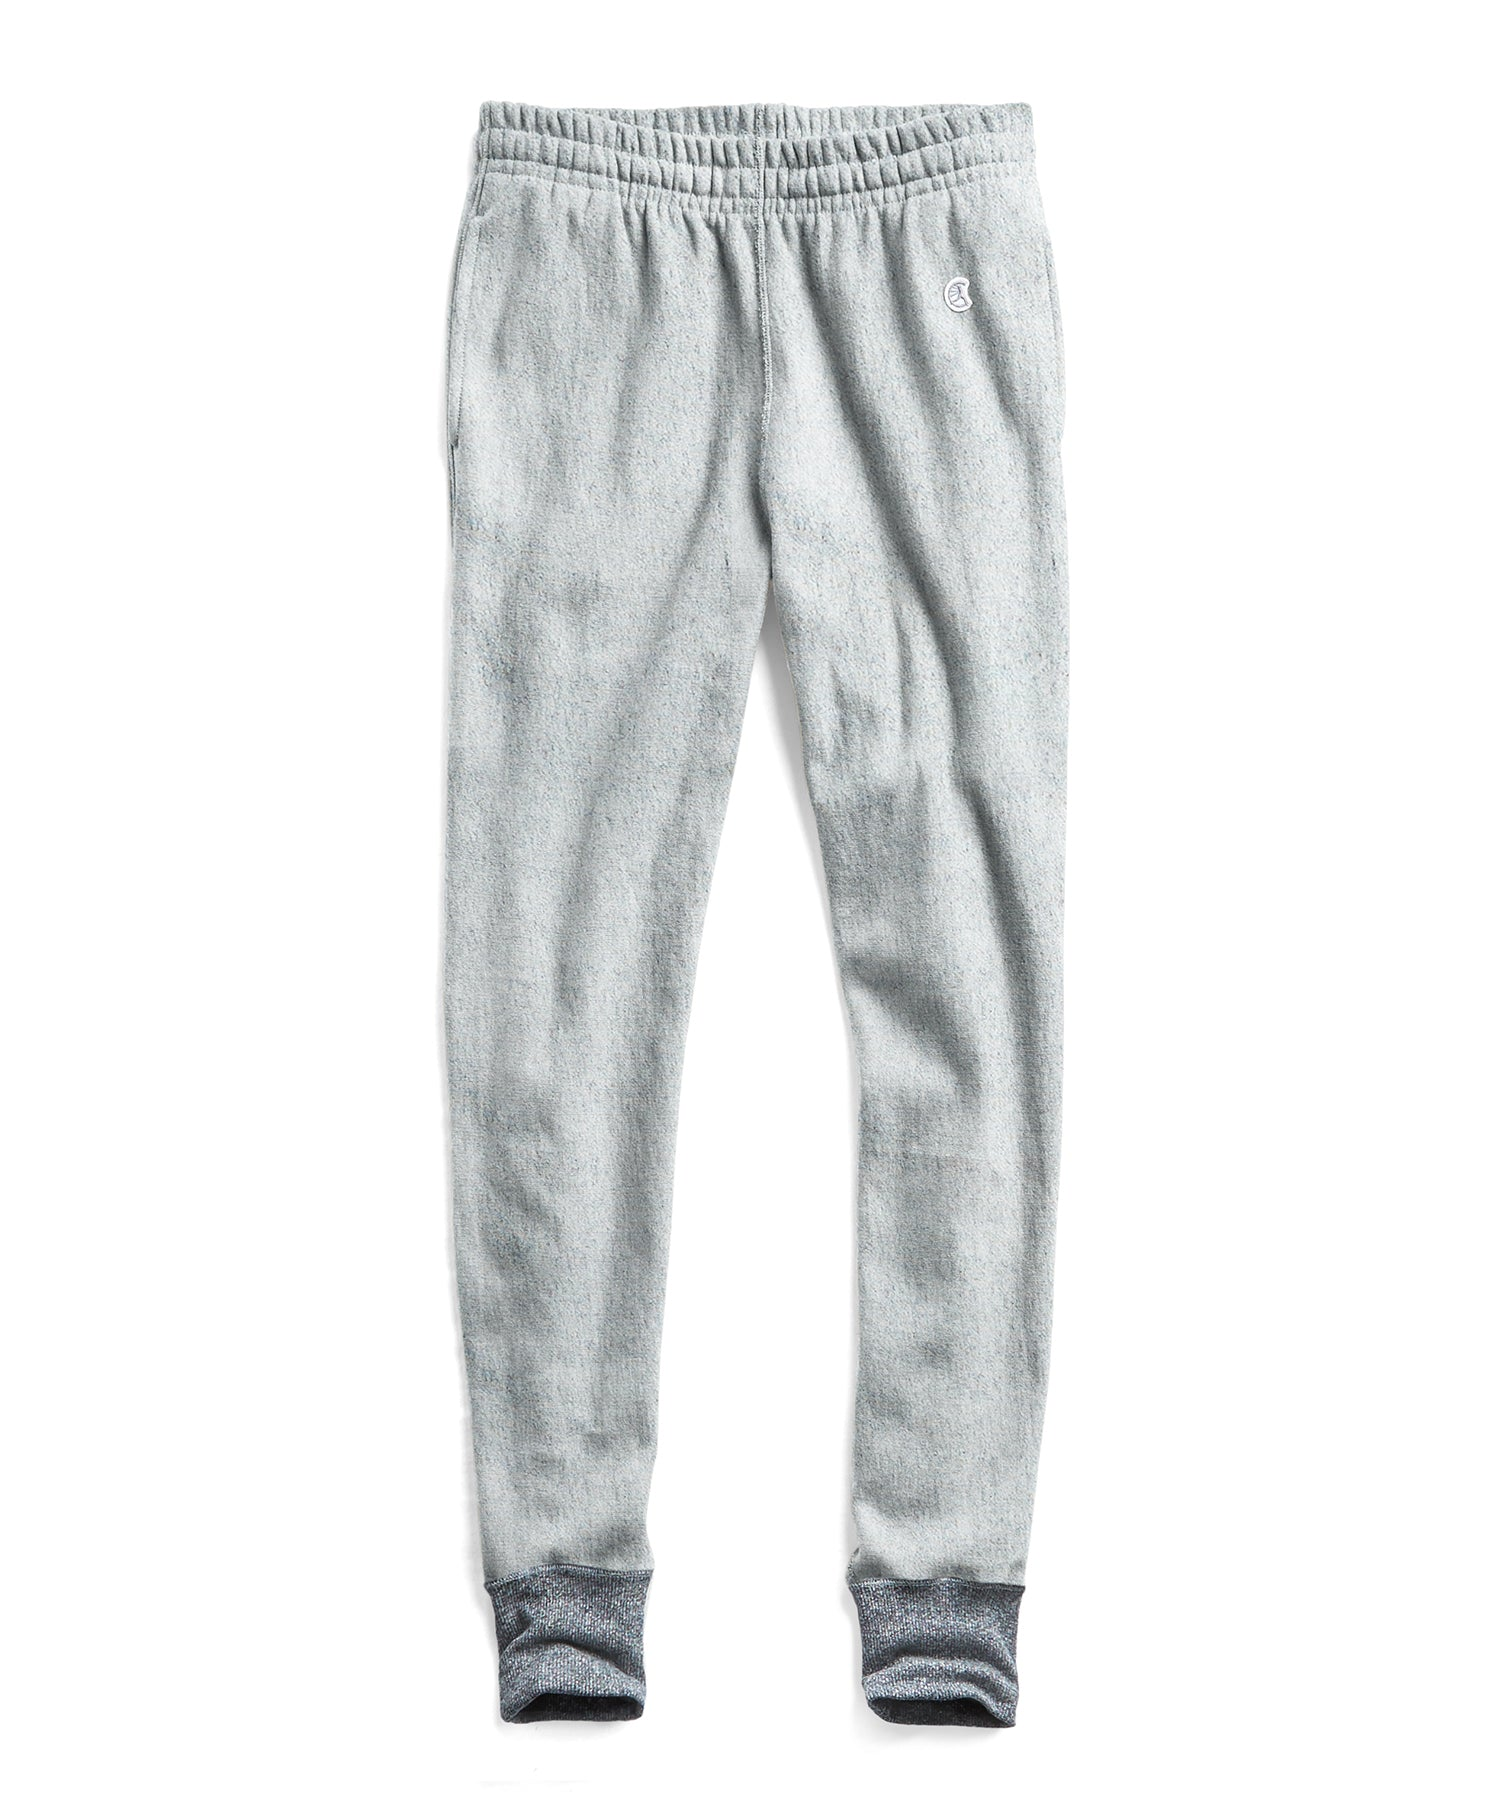 Reverse Weave Slim Sweatpant With Rib Contrast in Light Grey Mix